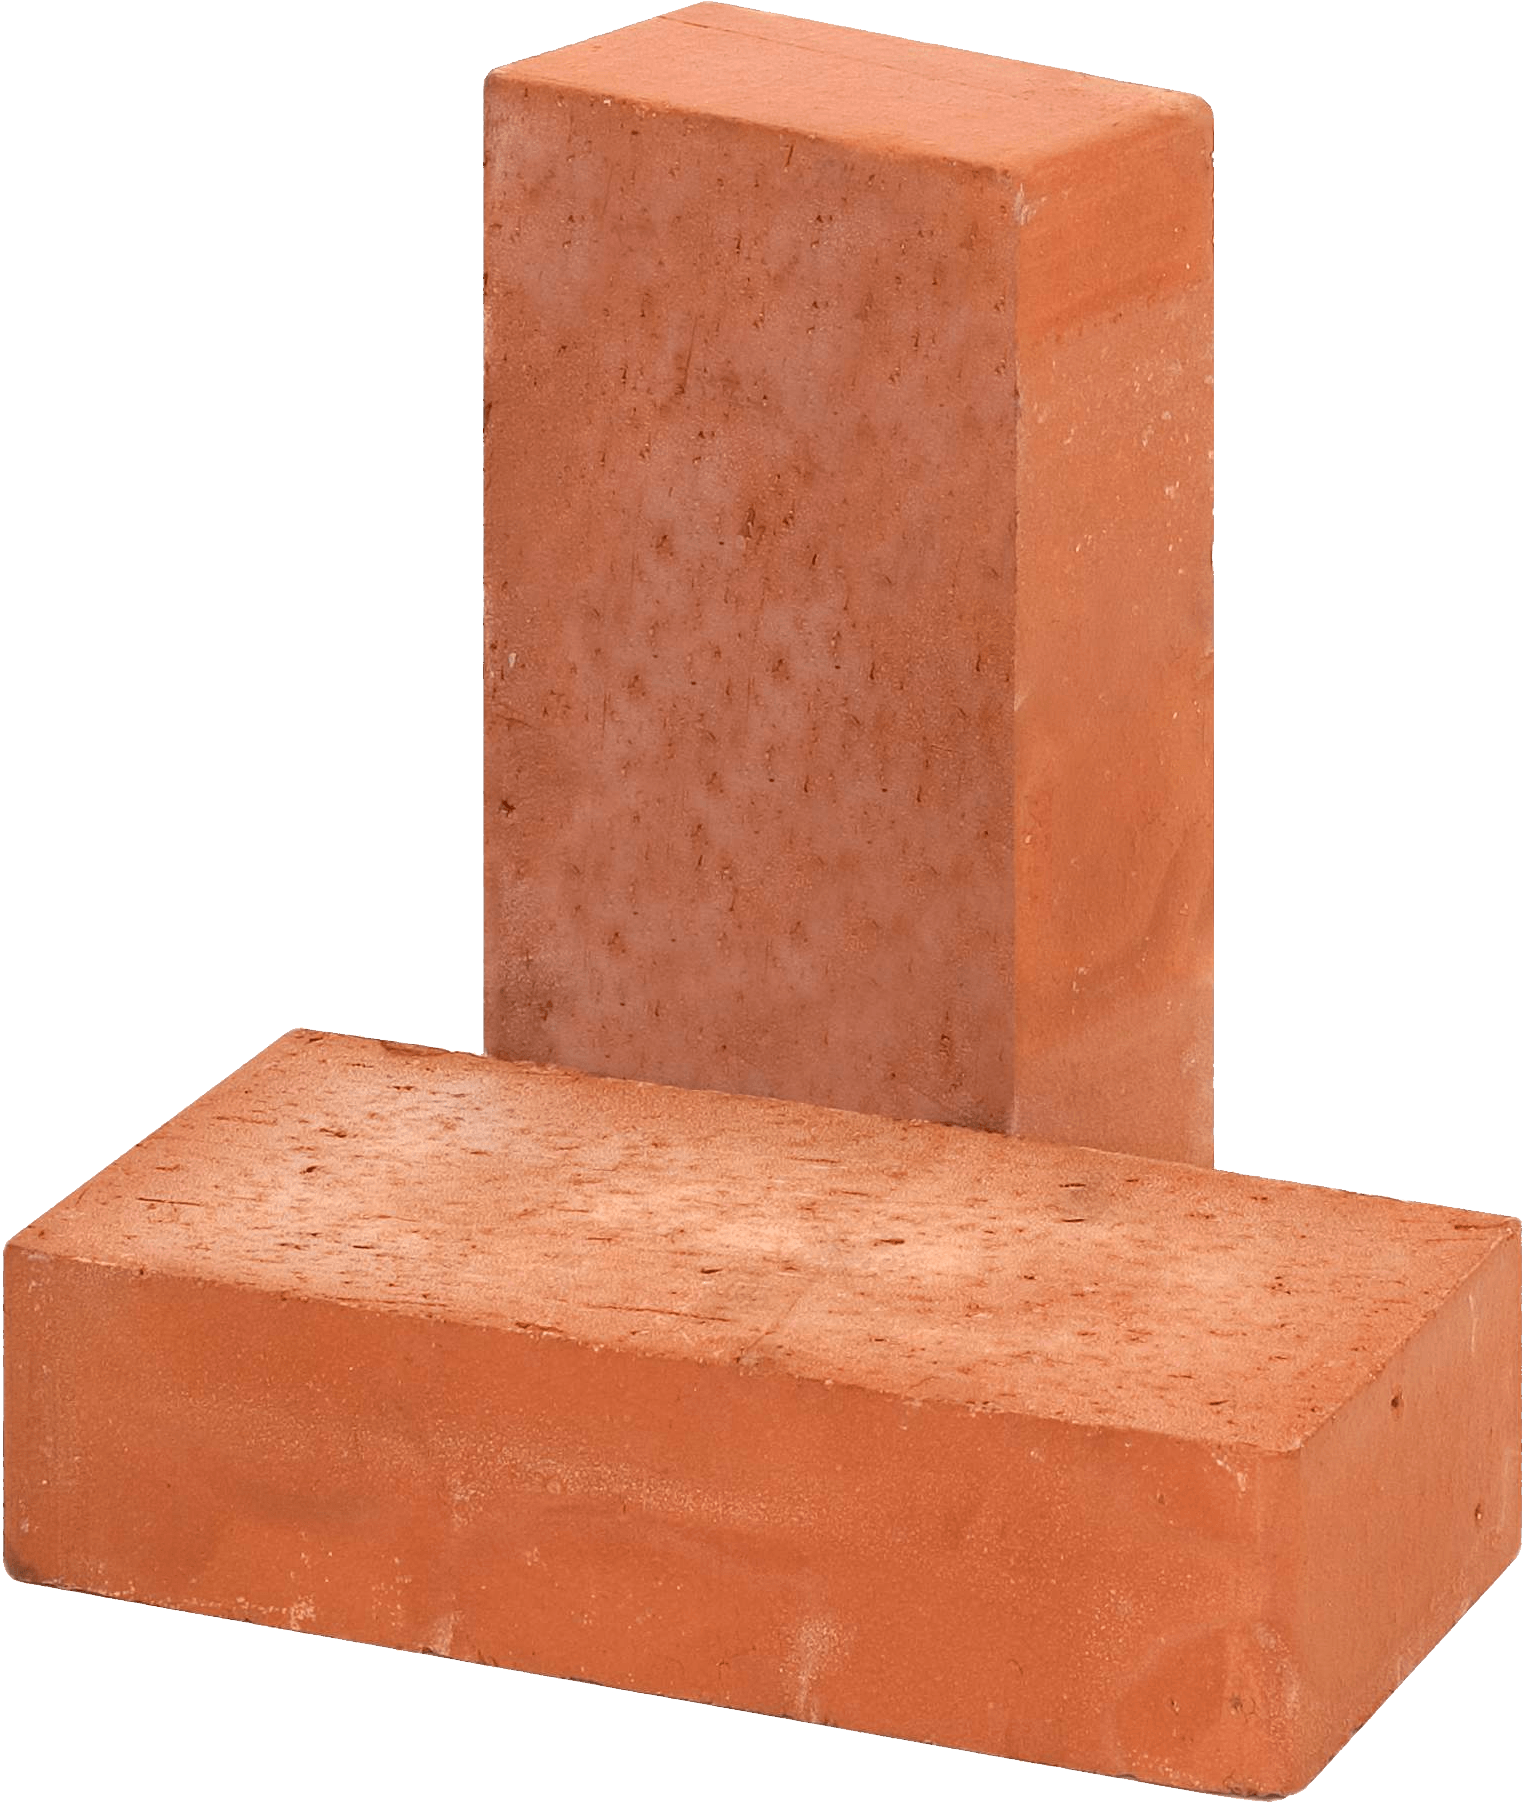 Two Bricks - Brick PNG